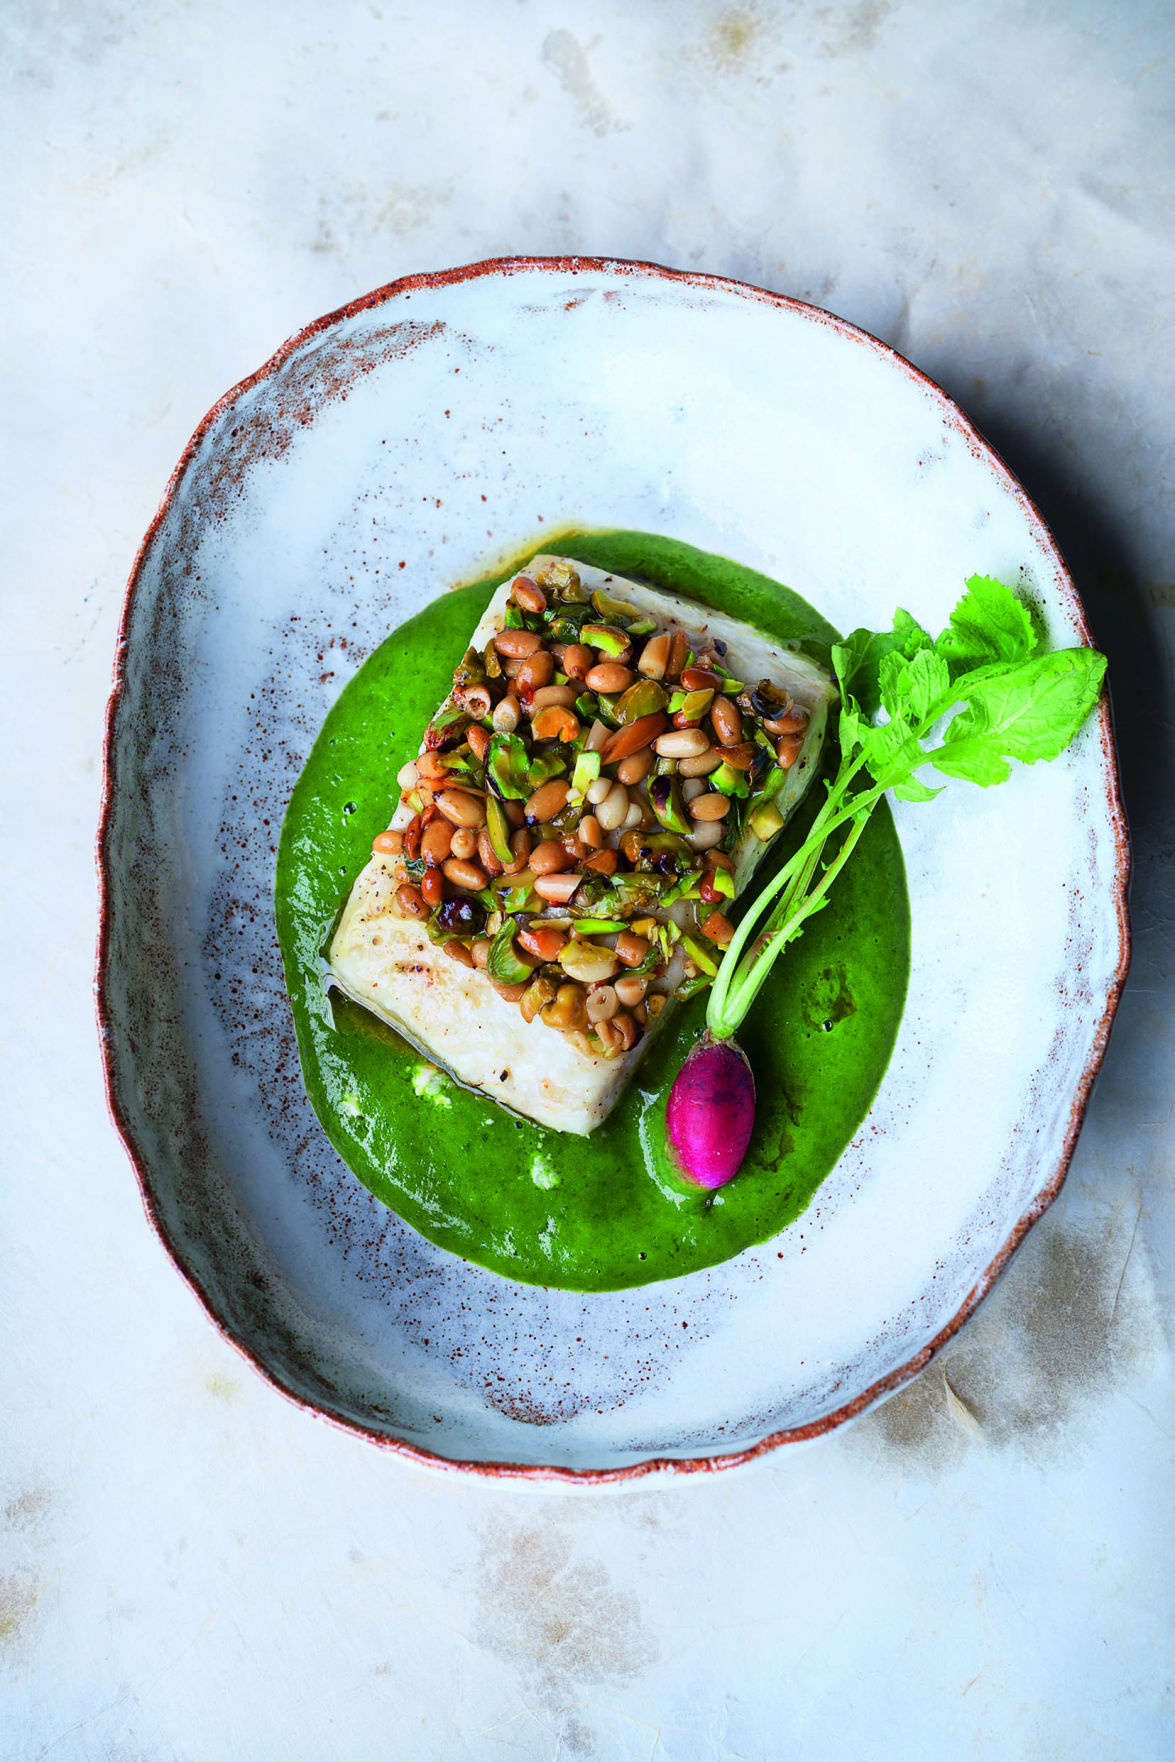 Pistachio and pine nut-crusted halibut with wild arugula and parsley vichyssoise